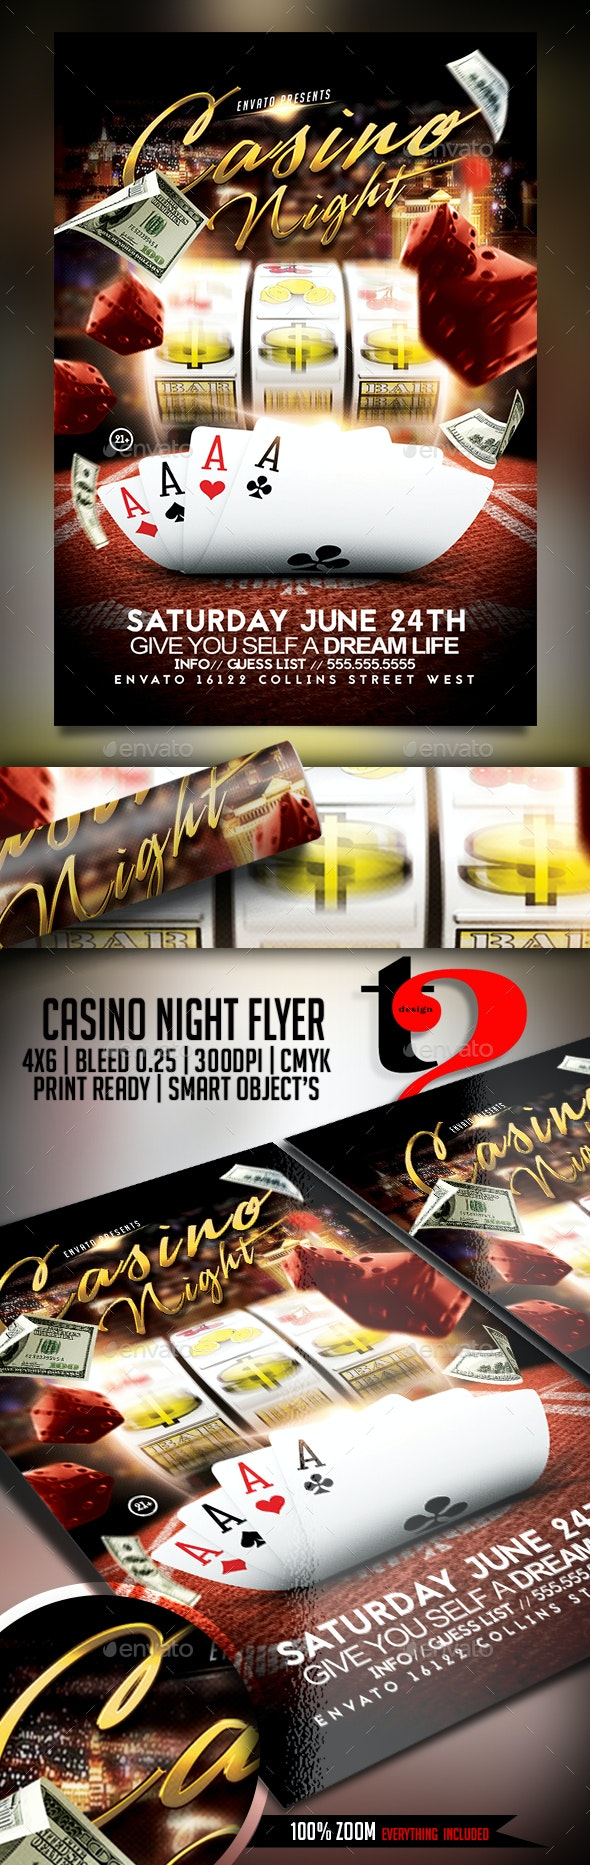 Casino Night Flyer Template - Clubs & Parties Events